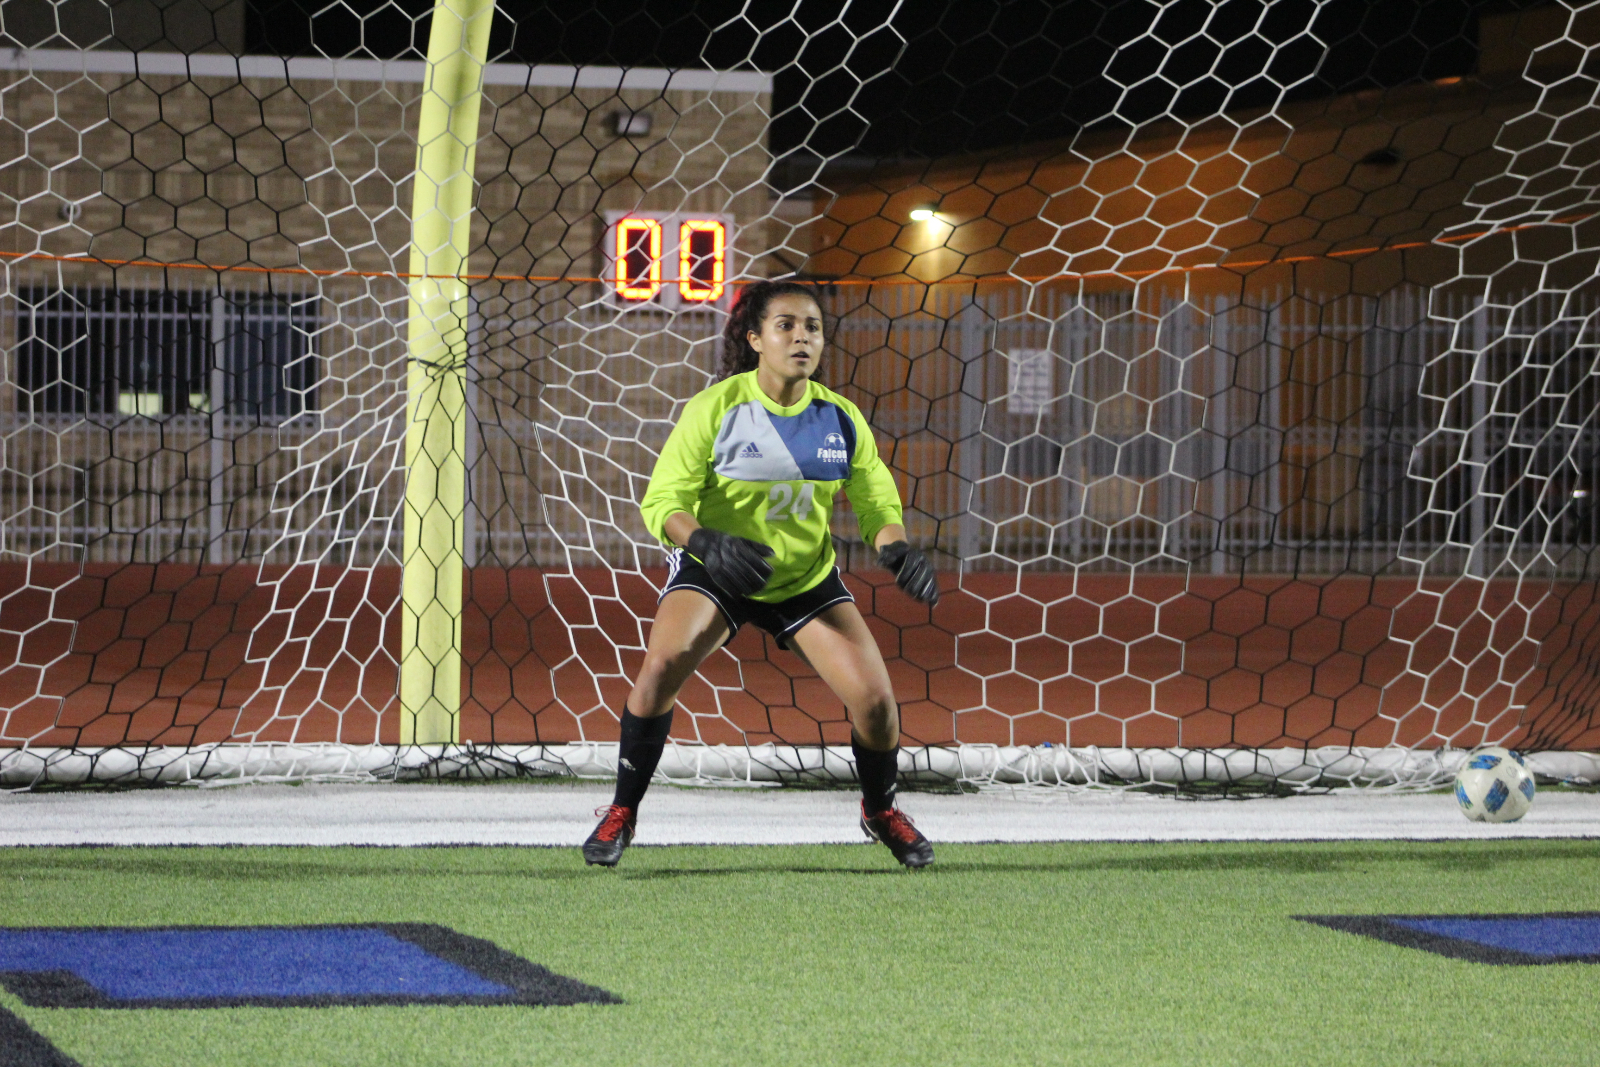 Lady Falcon and Falcon Soccer Try-outs 2020 (Nov. 30th – Dec. 2nd)